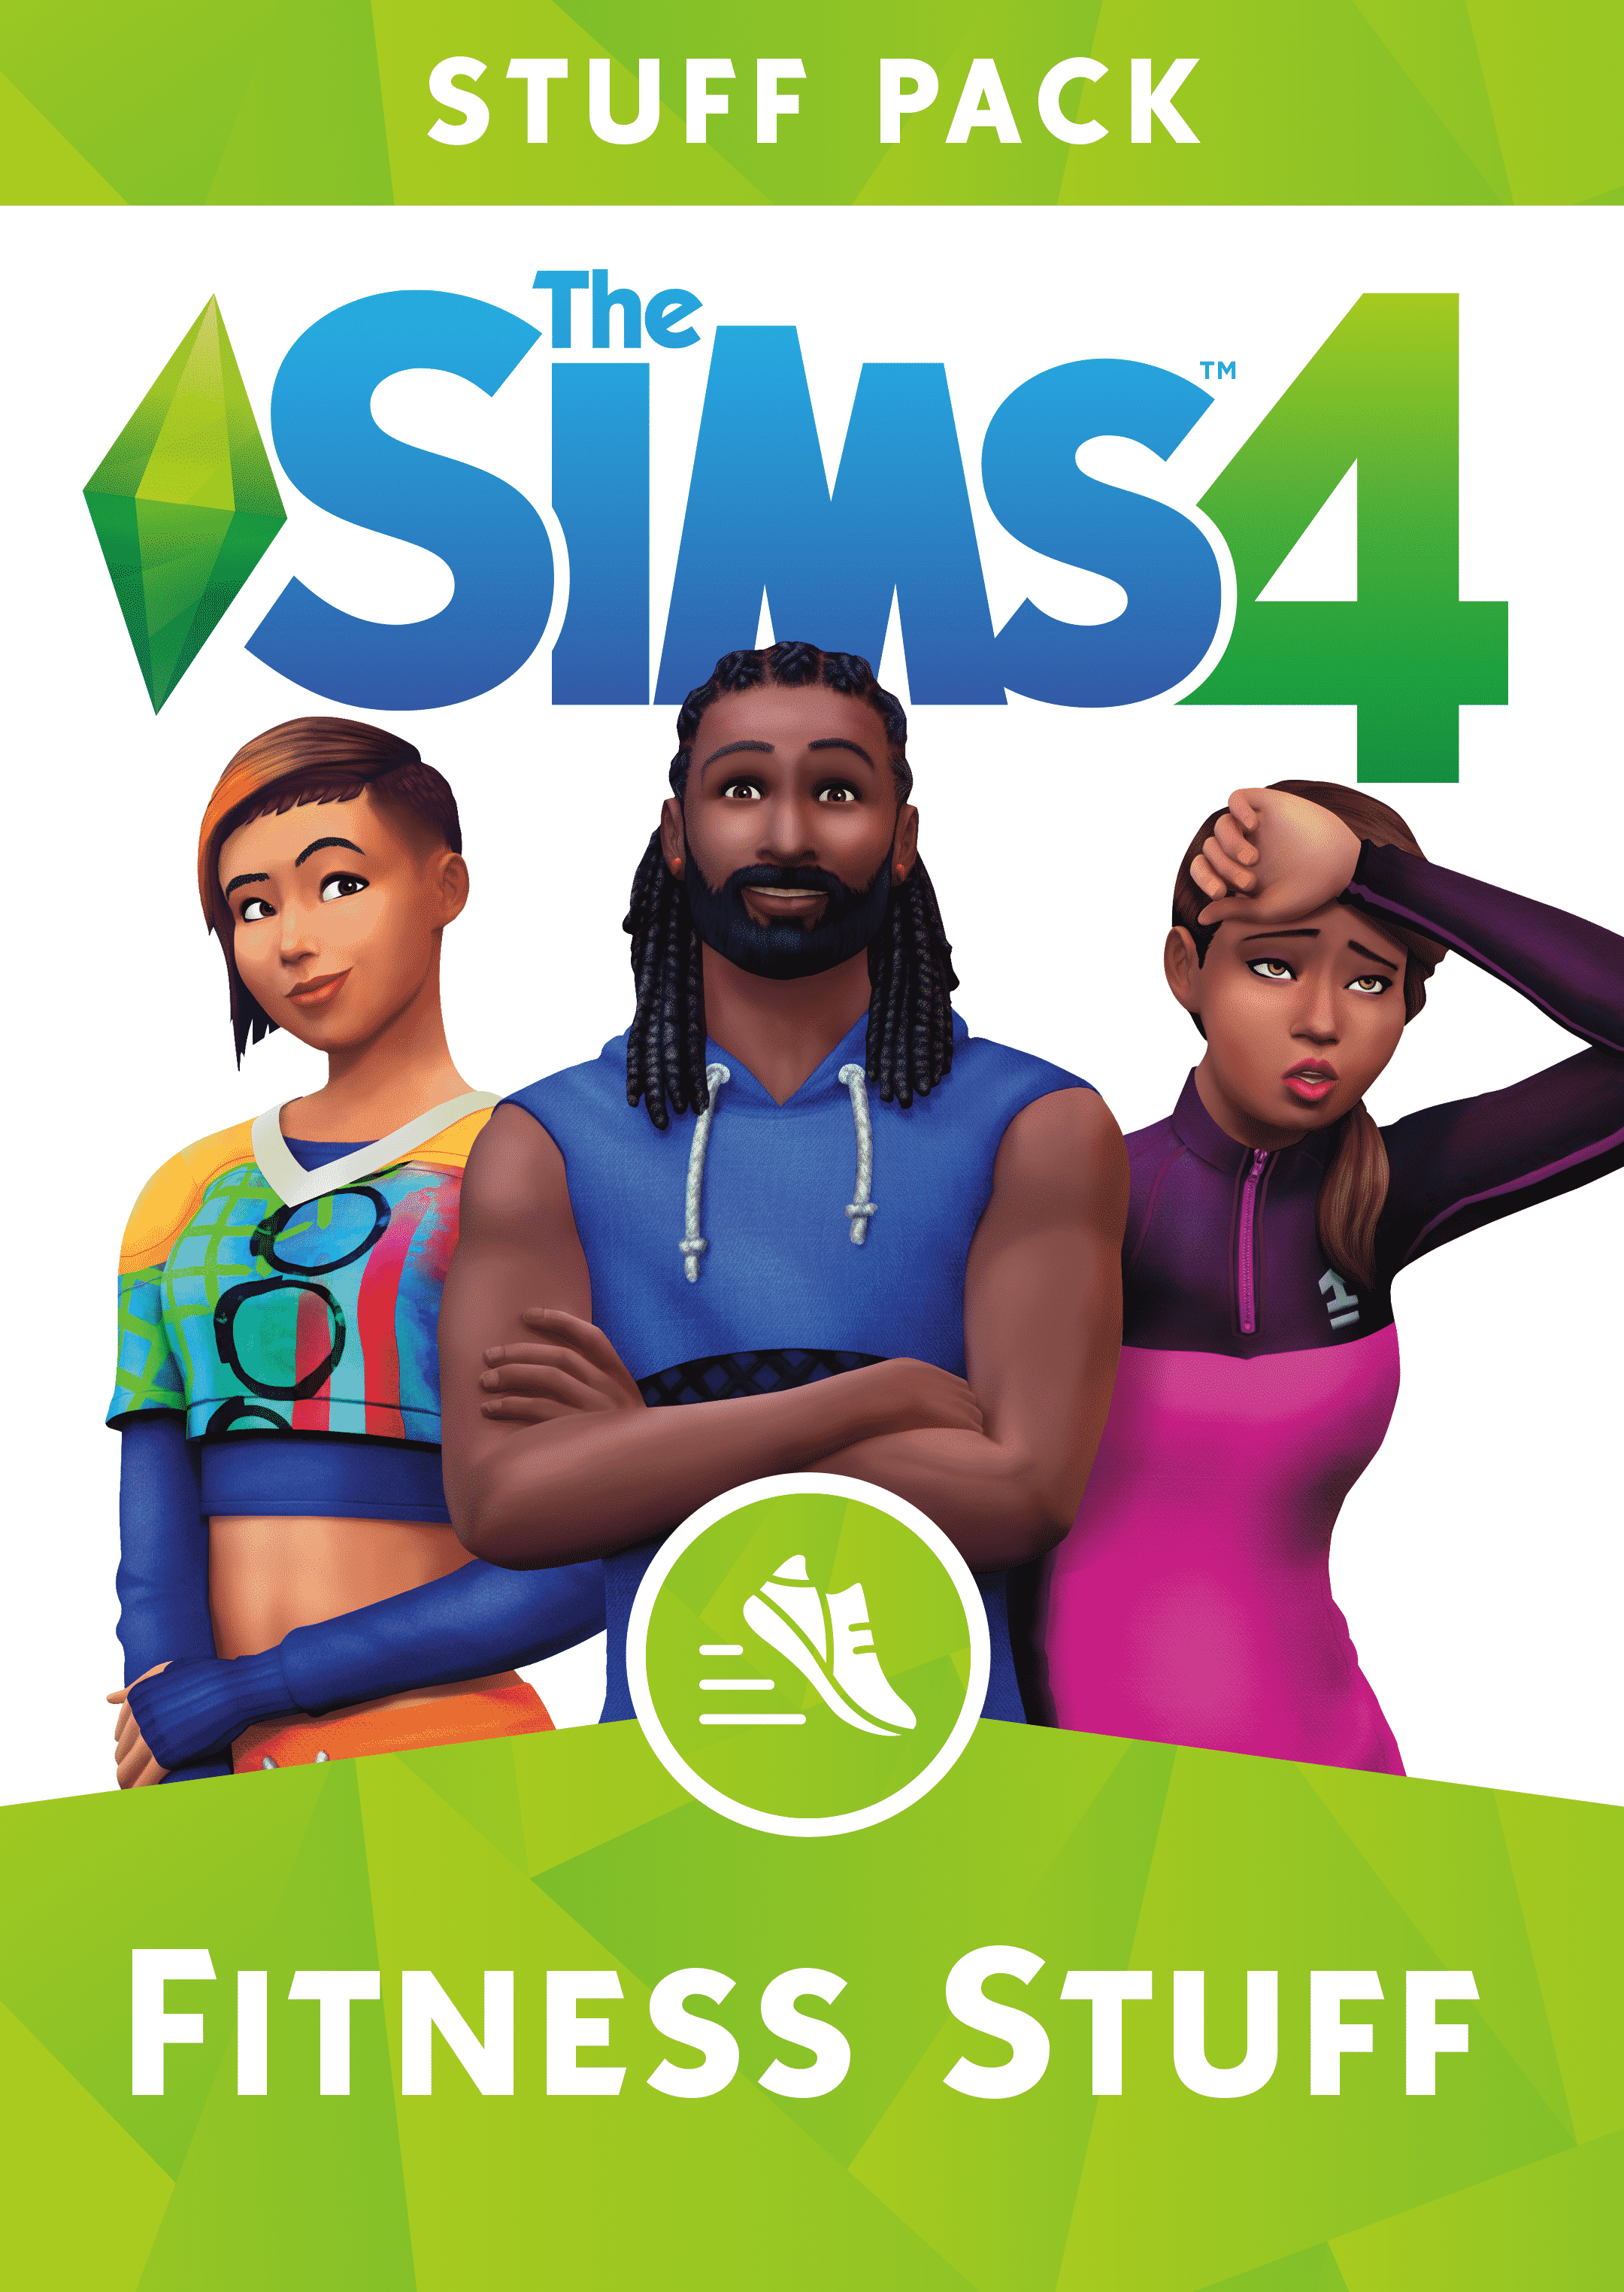 The Sims 4 Fitness Stuff: Official Assets (Renders, Logo ... | 2160 x 3048 png 2793kB